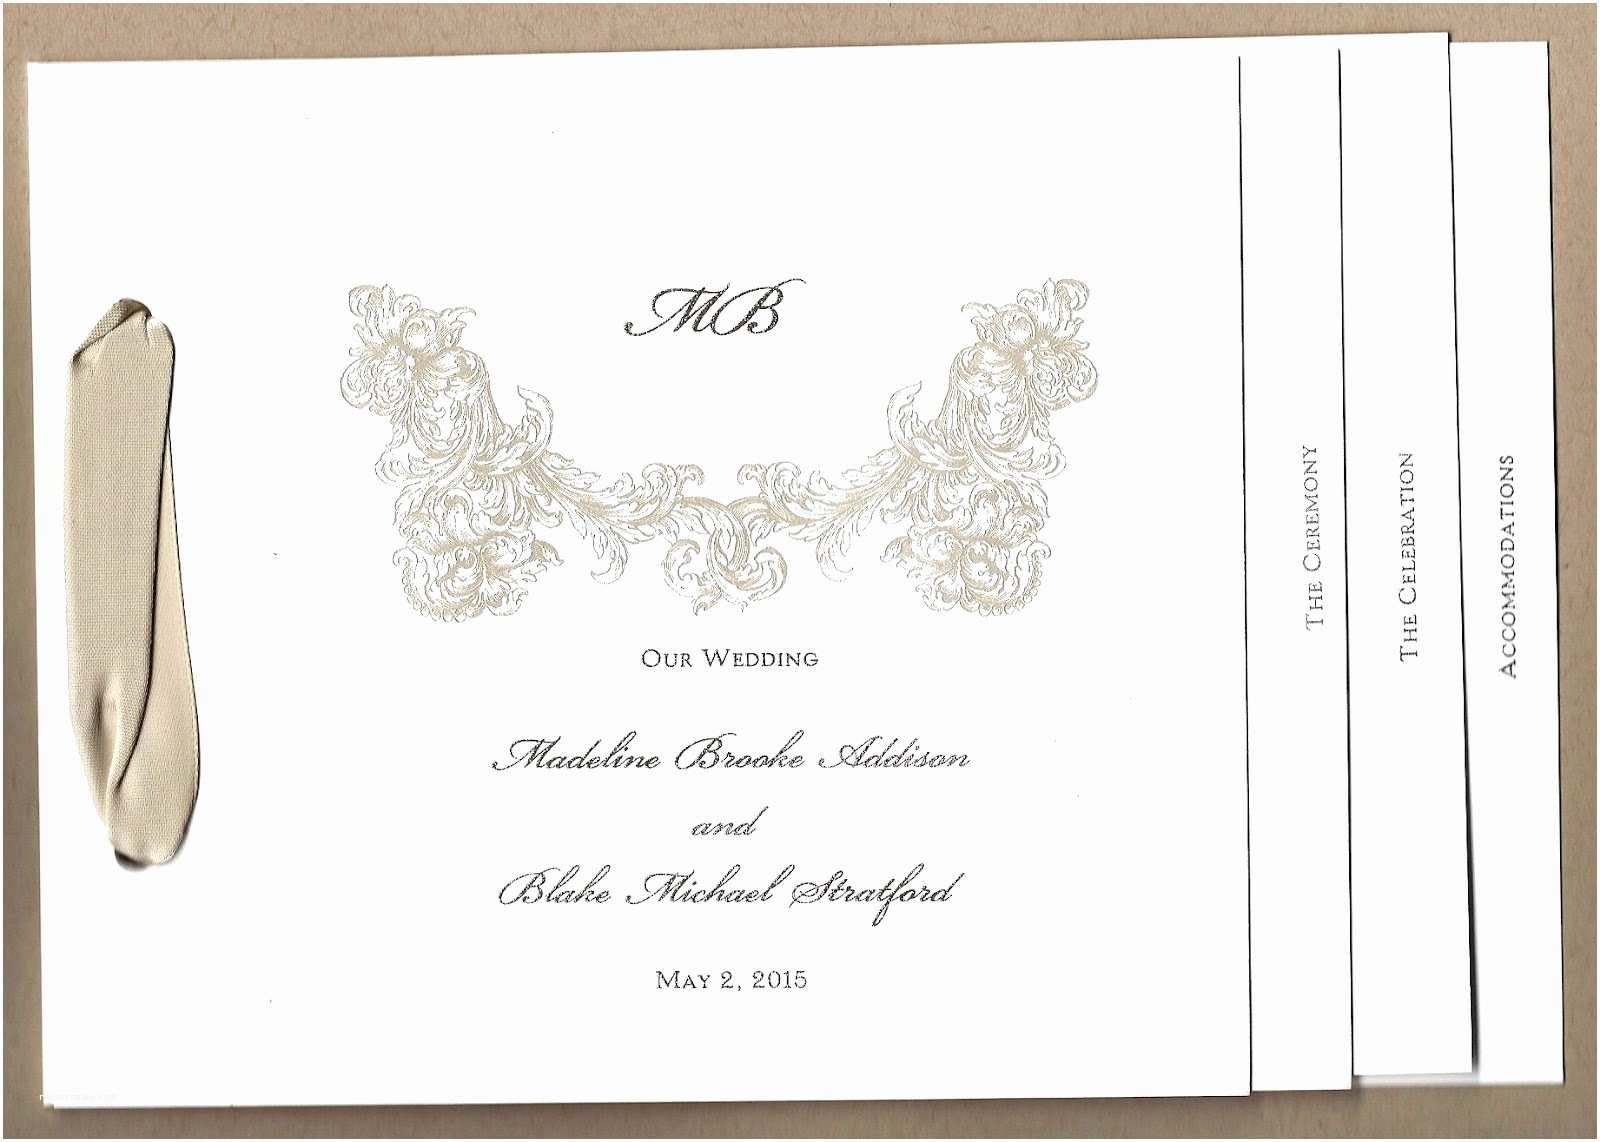 Make Your Own Wedding Shower Invitations Free Make Your Own Line Wedding Invitations Free Templates